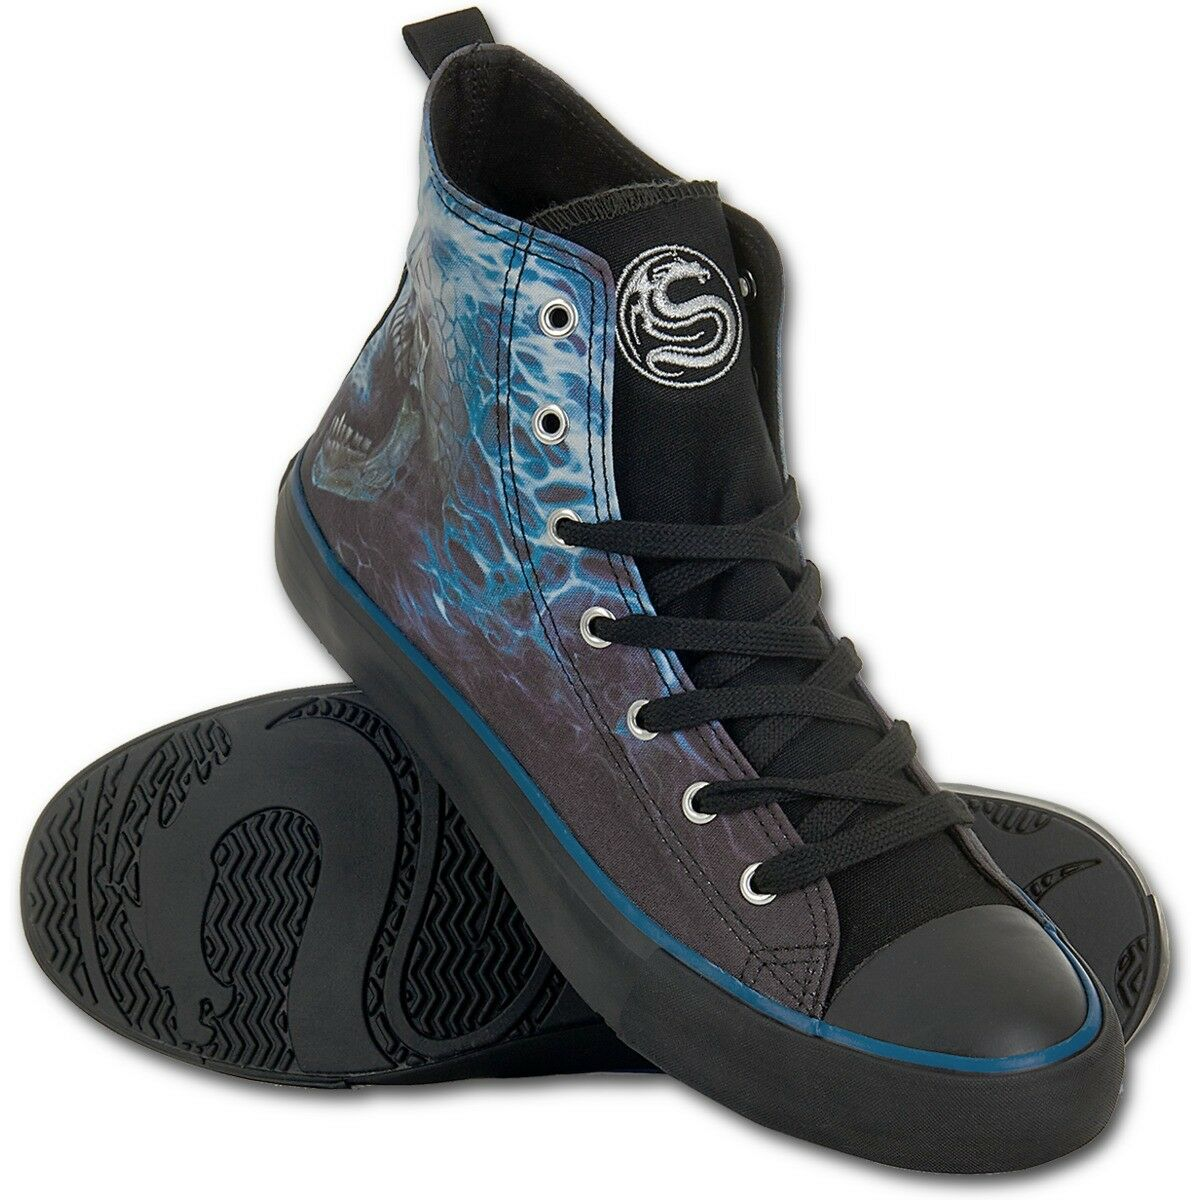 Spiral Direct - FLAMING SPINE - Mens High Top Lace Sneakers   Rock, Sports